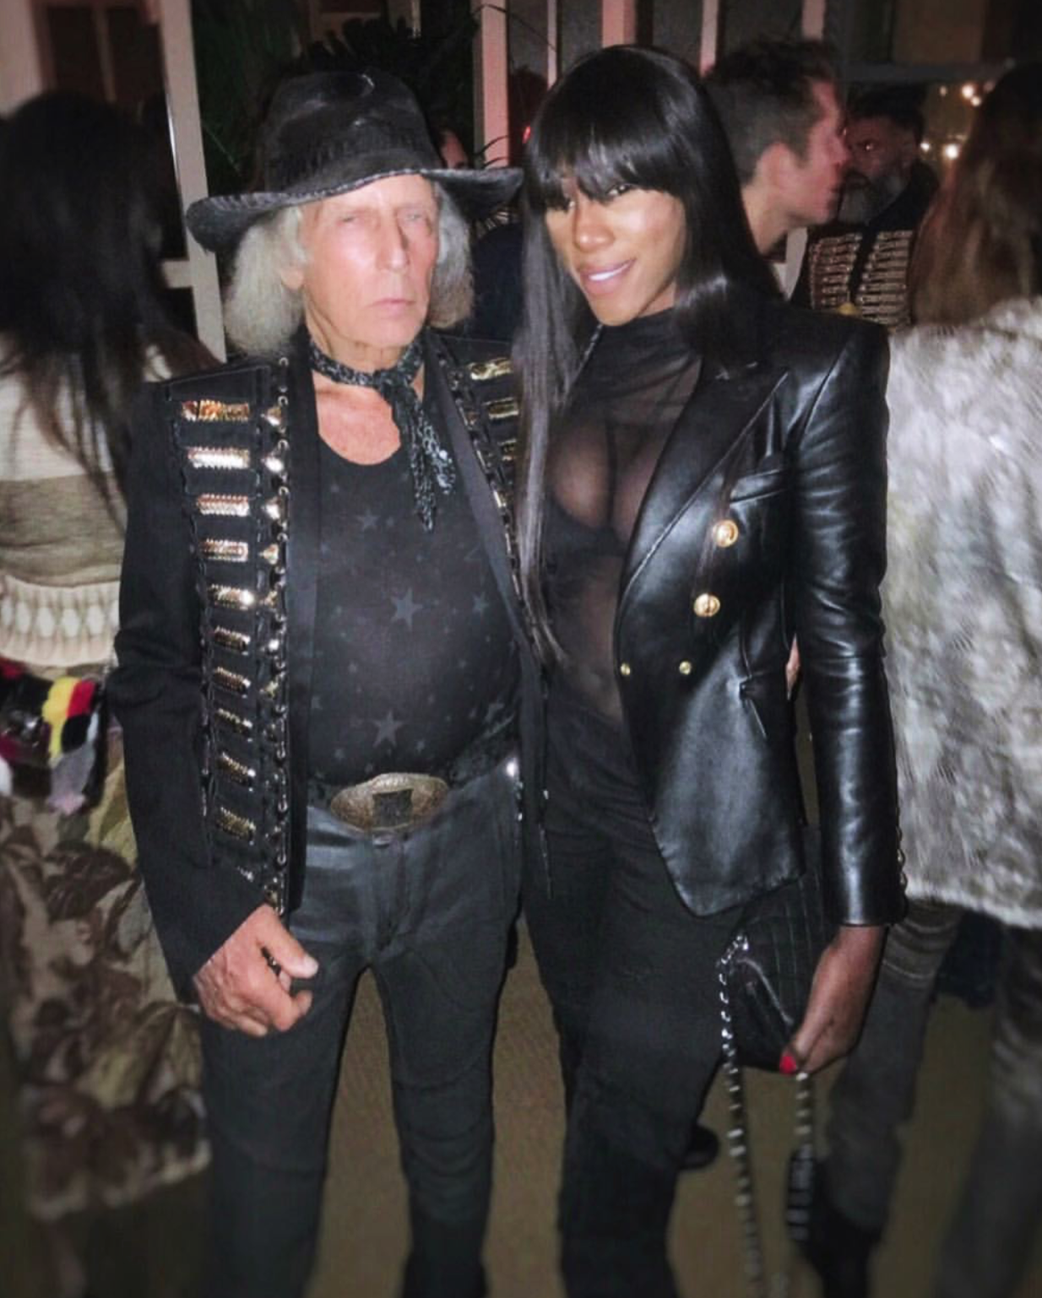 balmain-party-james-goldstein-paris-fashion-week